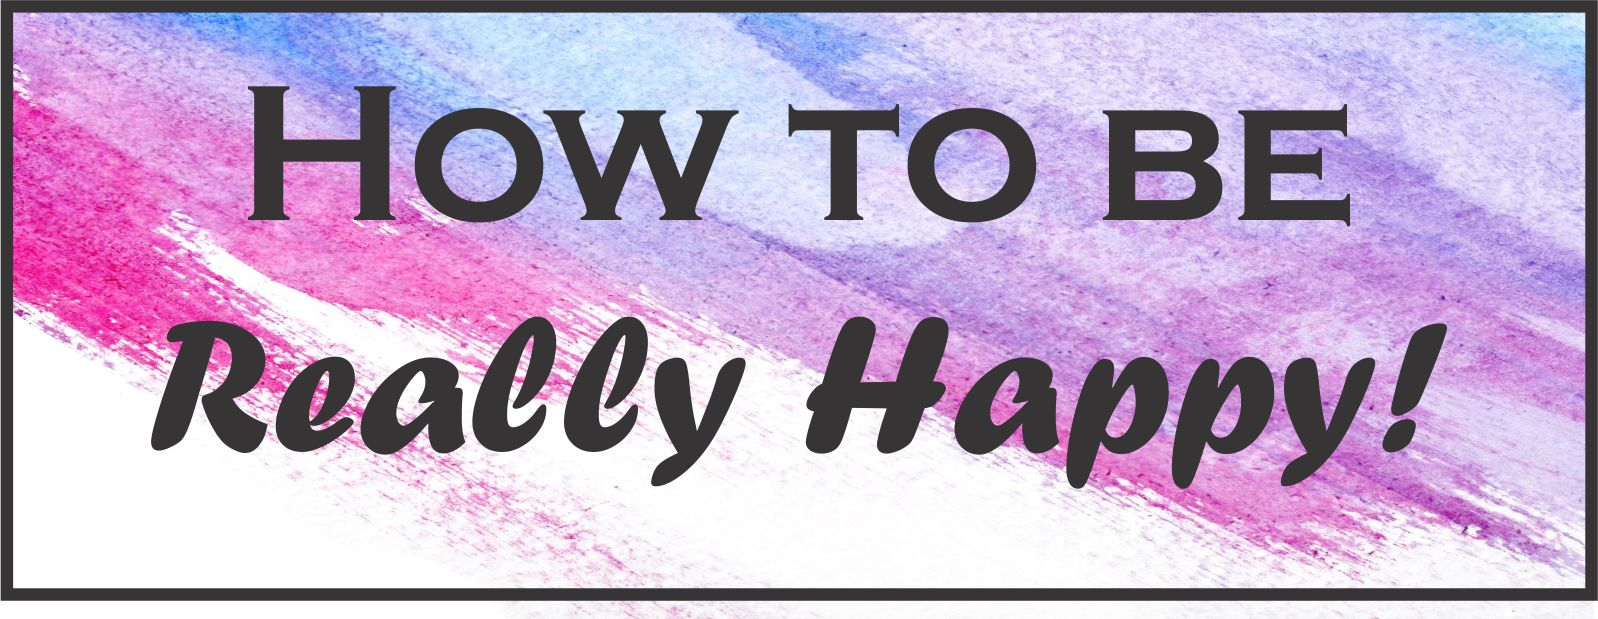 How To Be Really Happy!